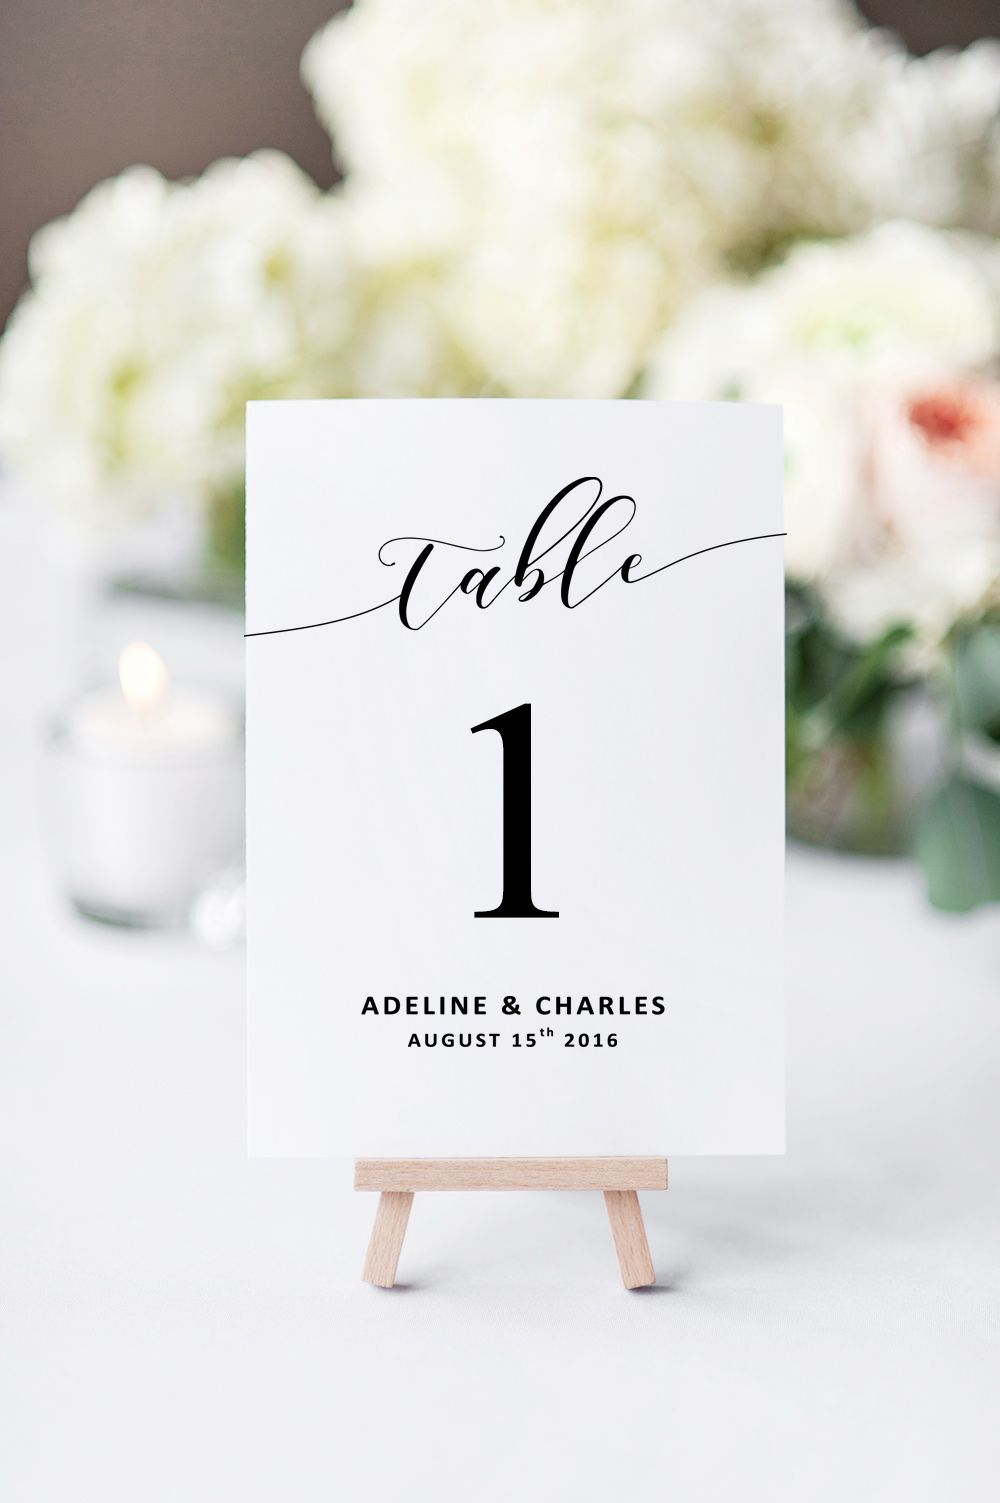 Printable Wedding Table Numbers For Your Wedding Reception Weddin Wedding Table Numbers Printable Wedding Reception Decorations Wedding Reception Invitations